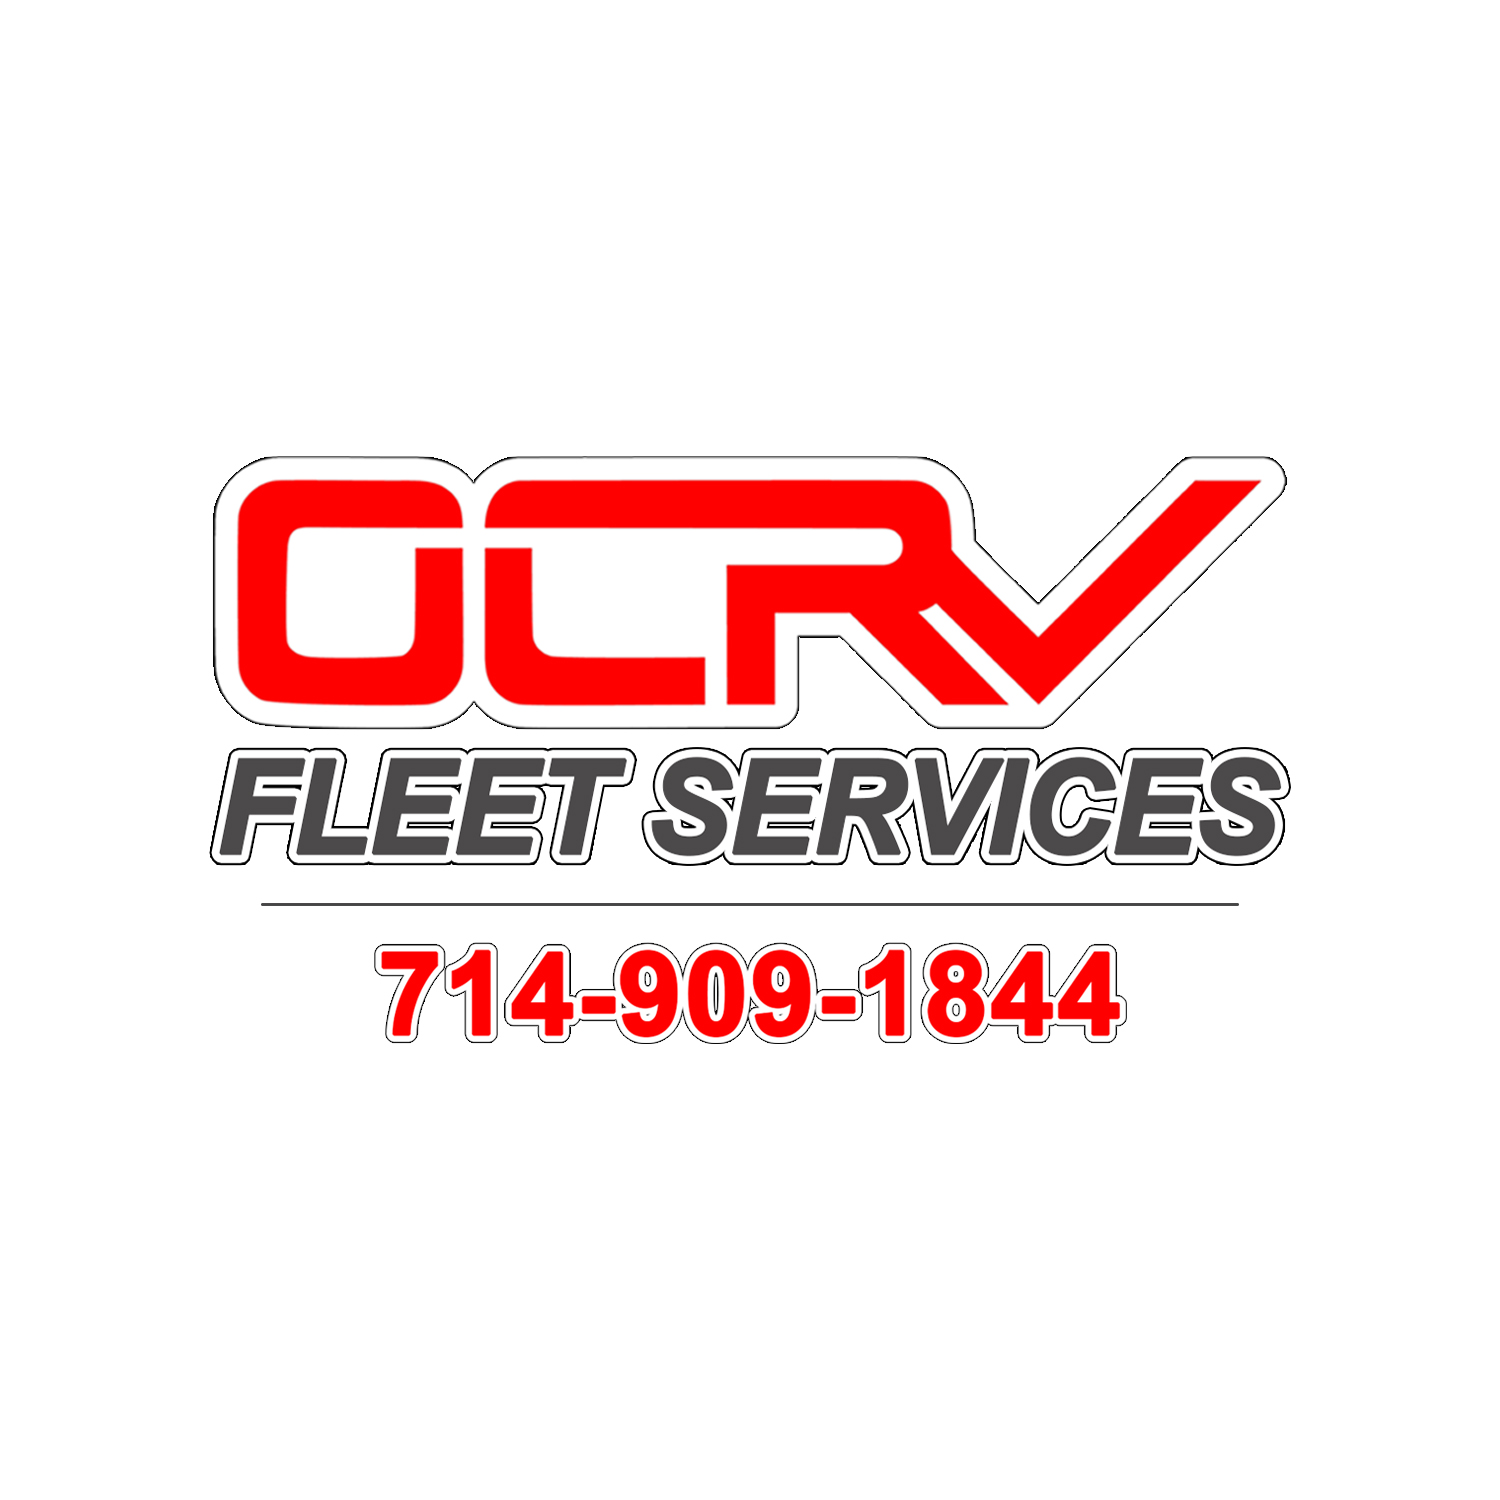 OCRV Fleet Services - Commercial Truck Collision Repair & Paint Shop